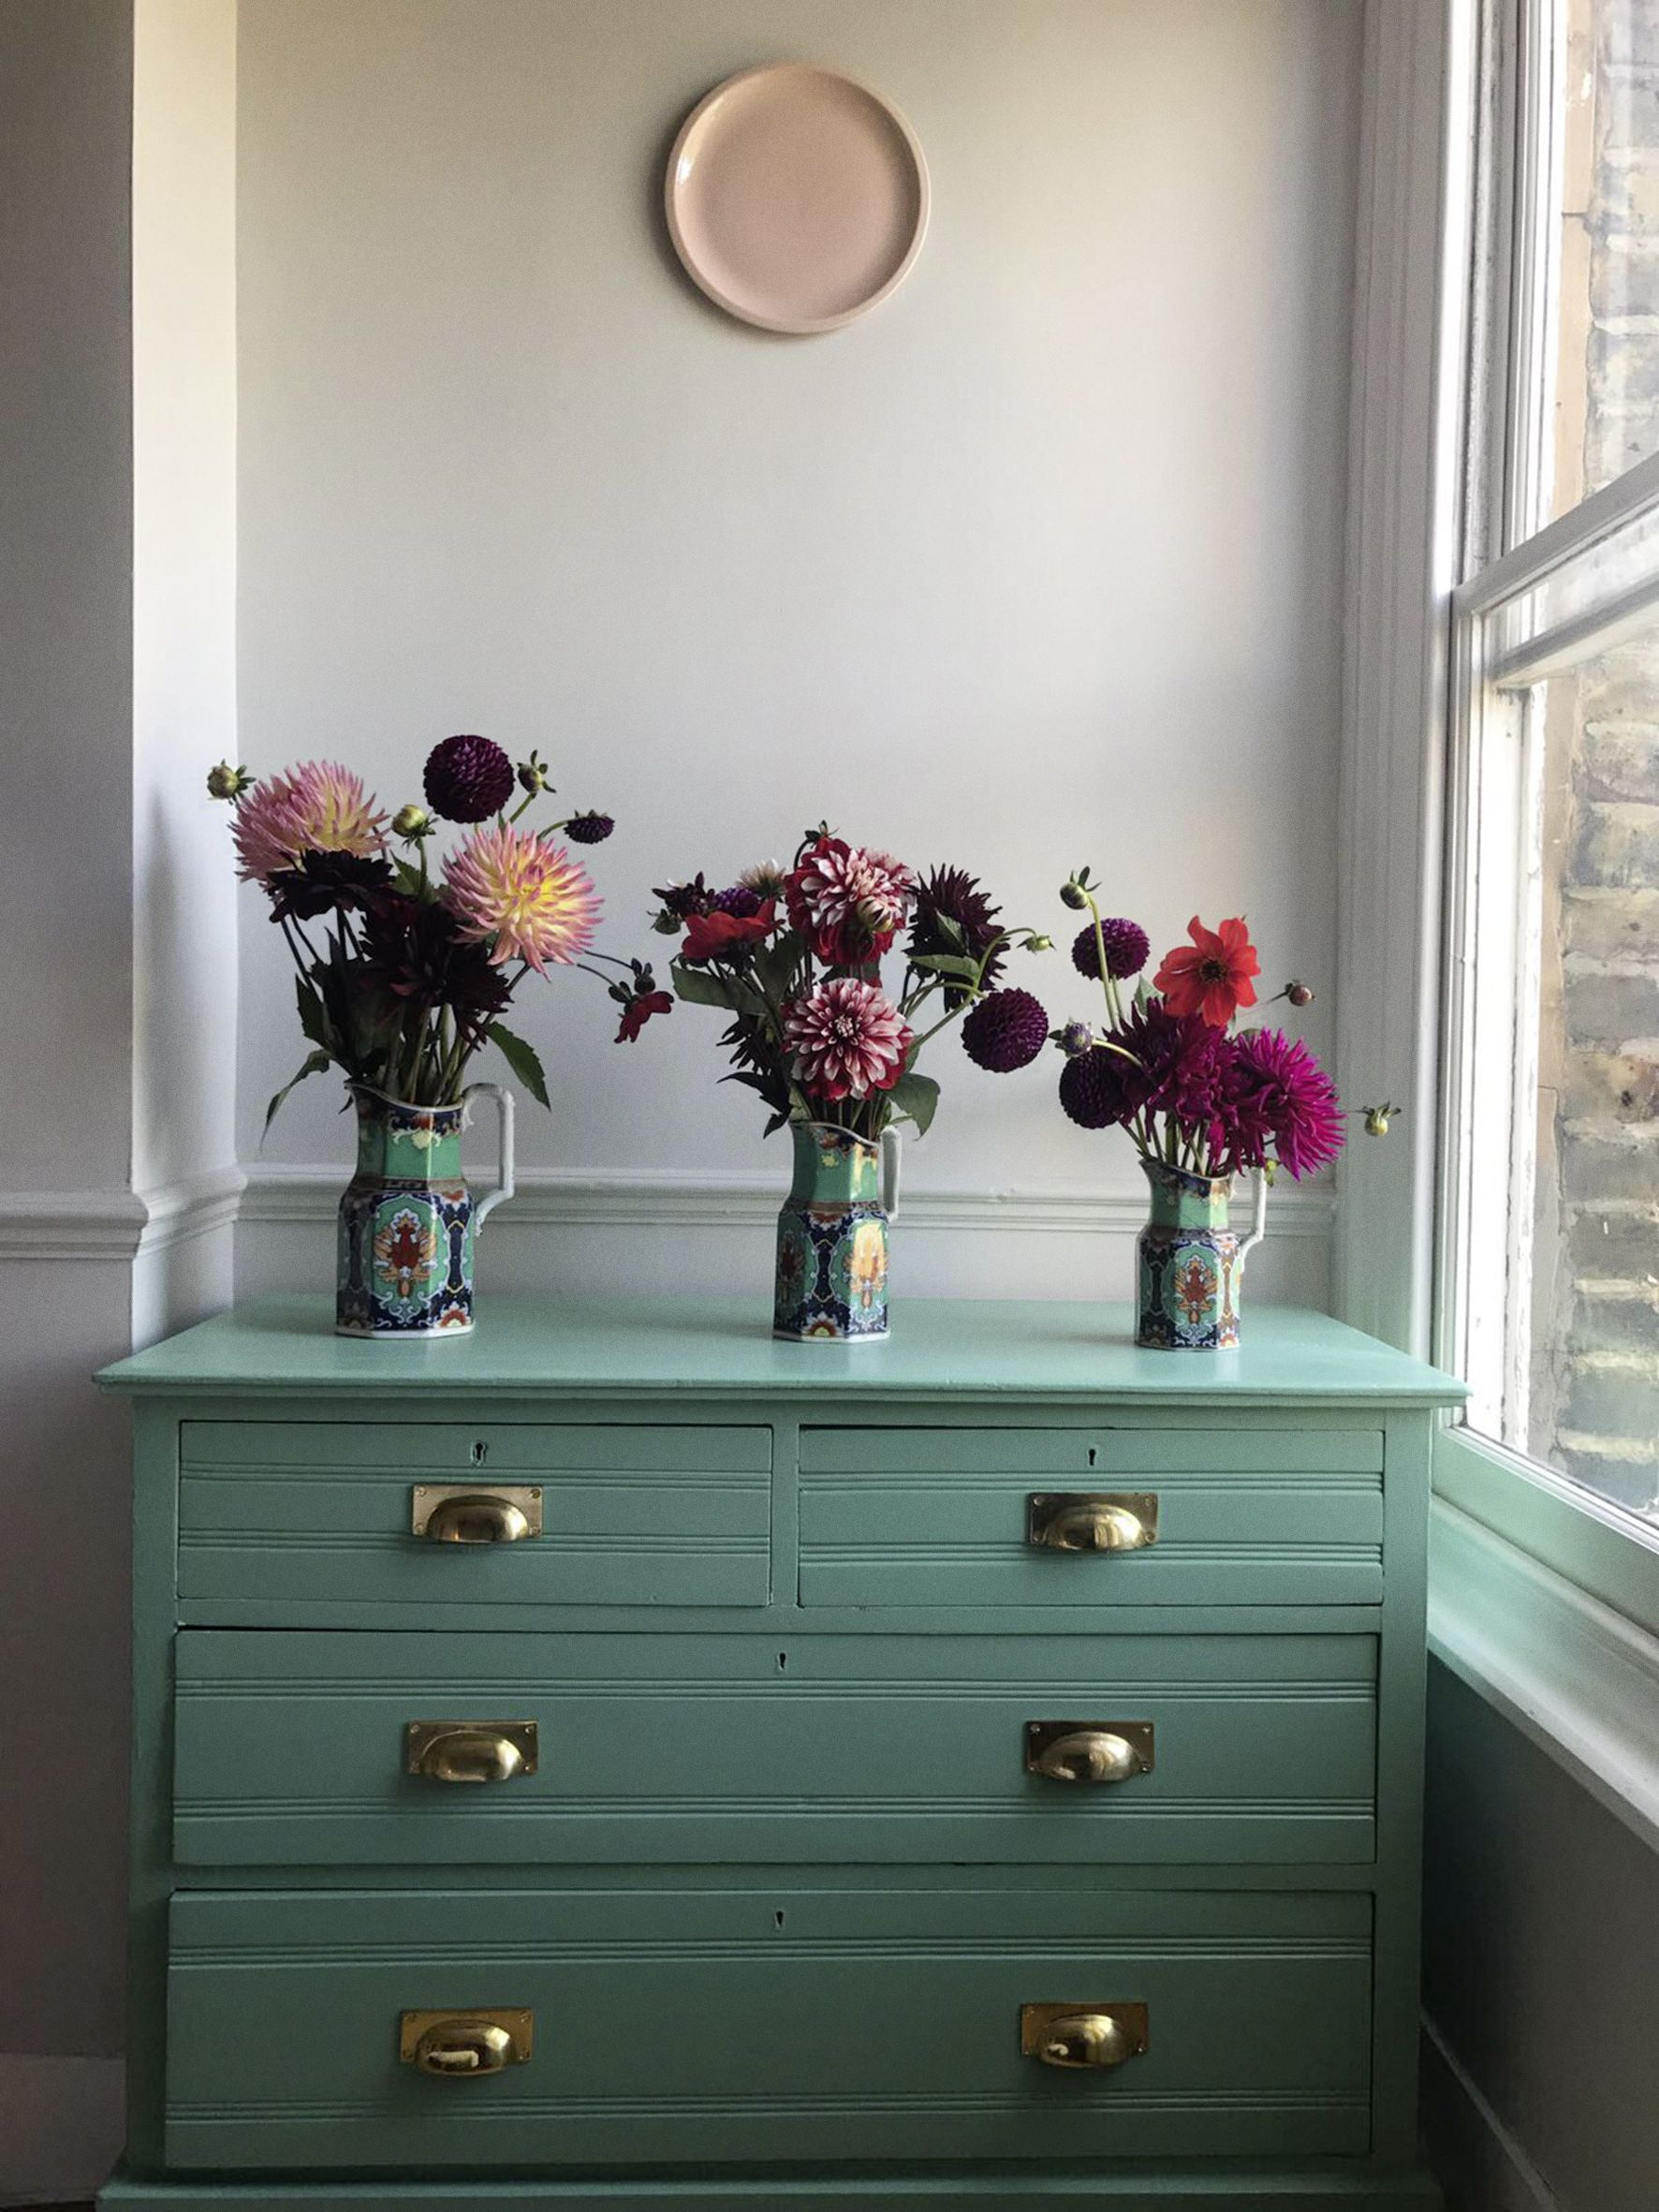 By using our lively mint green, Arsenic, when renovating ...